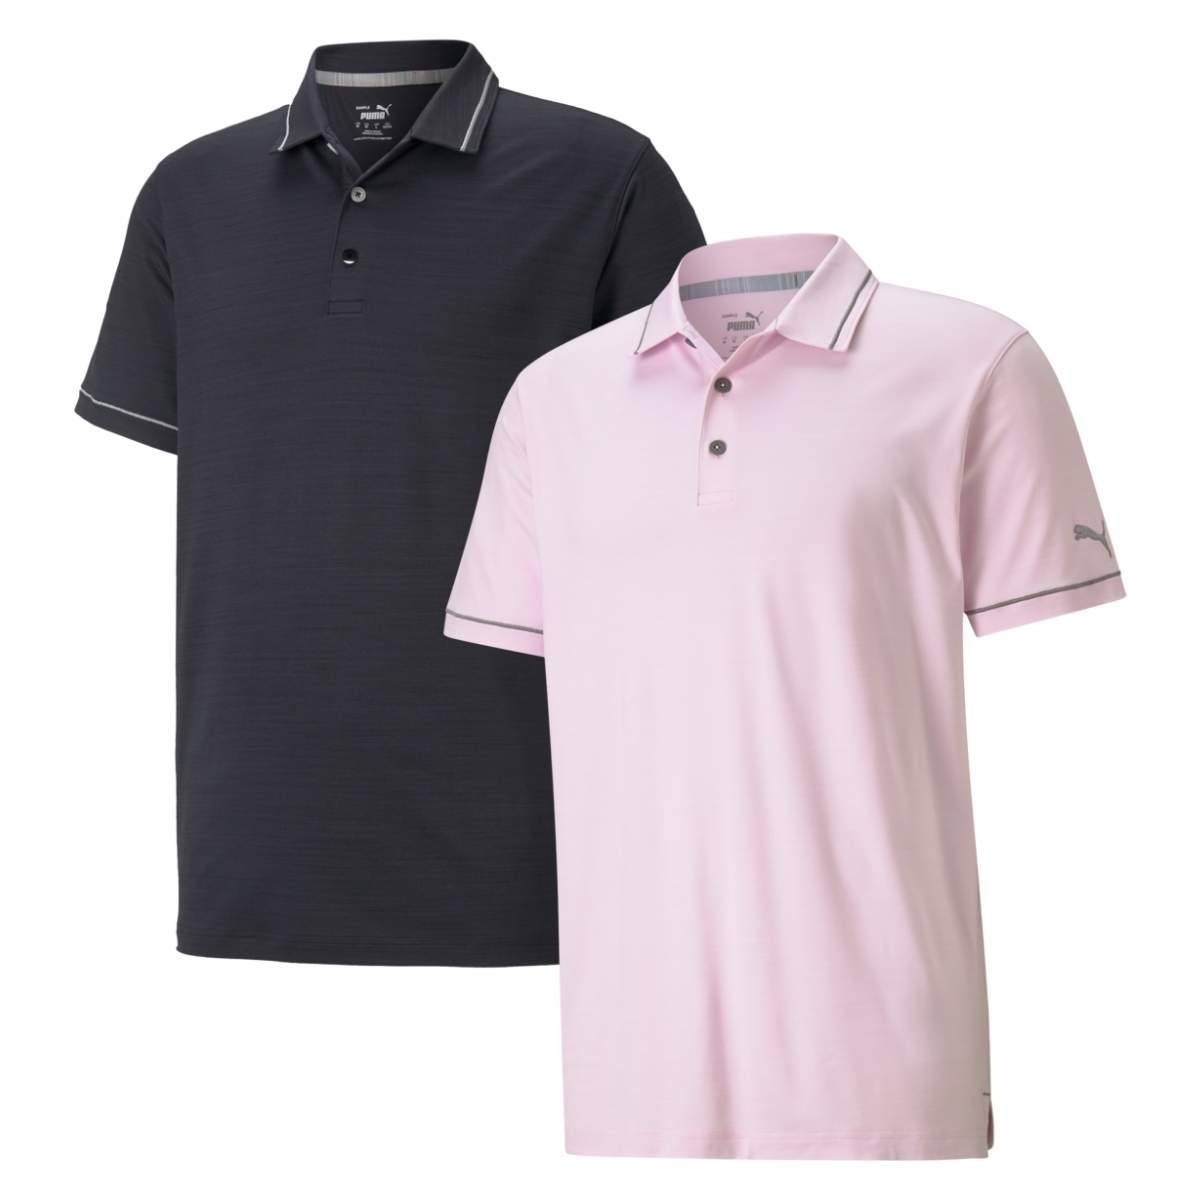 Puma Men's 2021 Cloudspun Monarch Polo